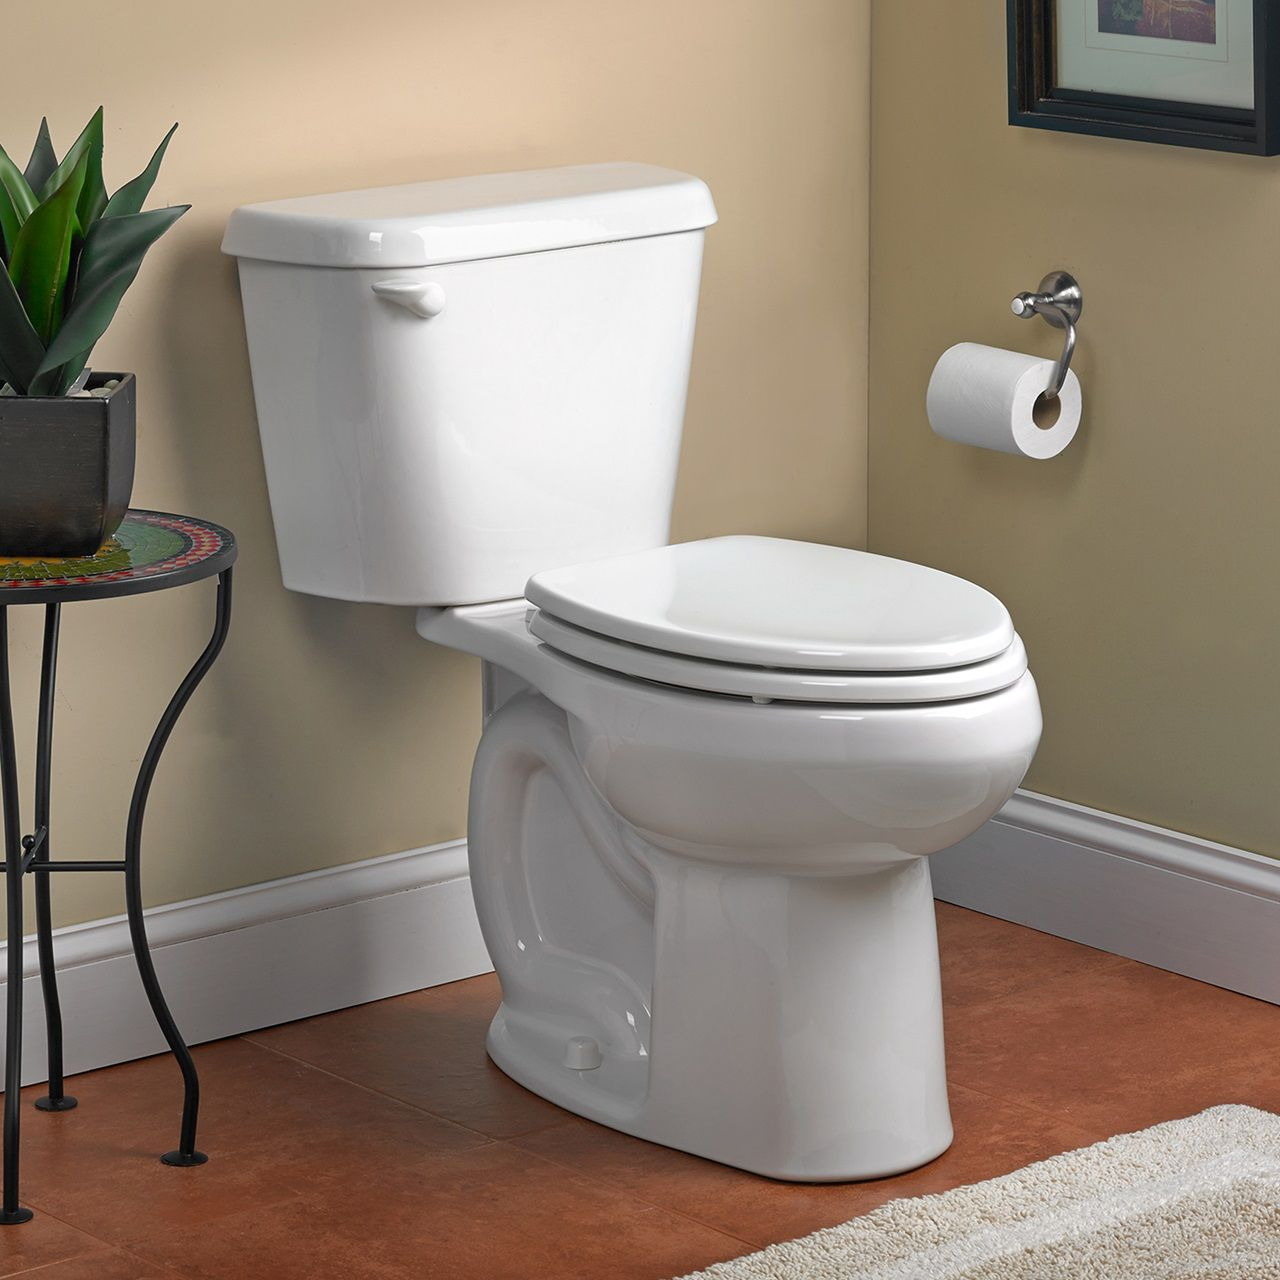 Toilets Colony Round Front Toilet 12 Rough In 1 6 Gpf White American Standard Toilet Seat Traditional Toilets